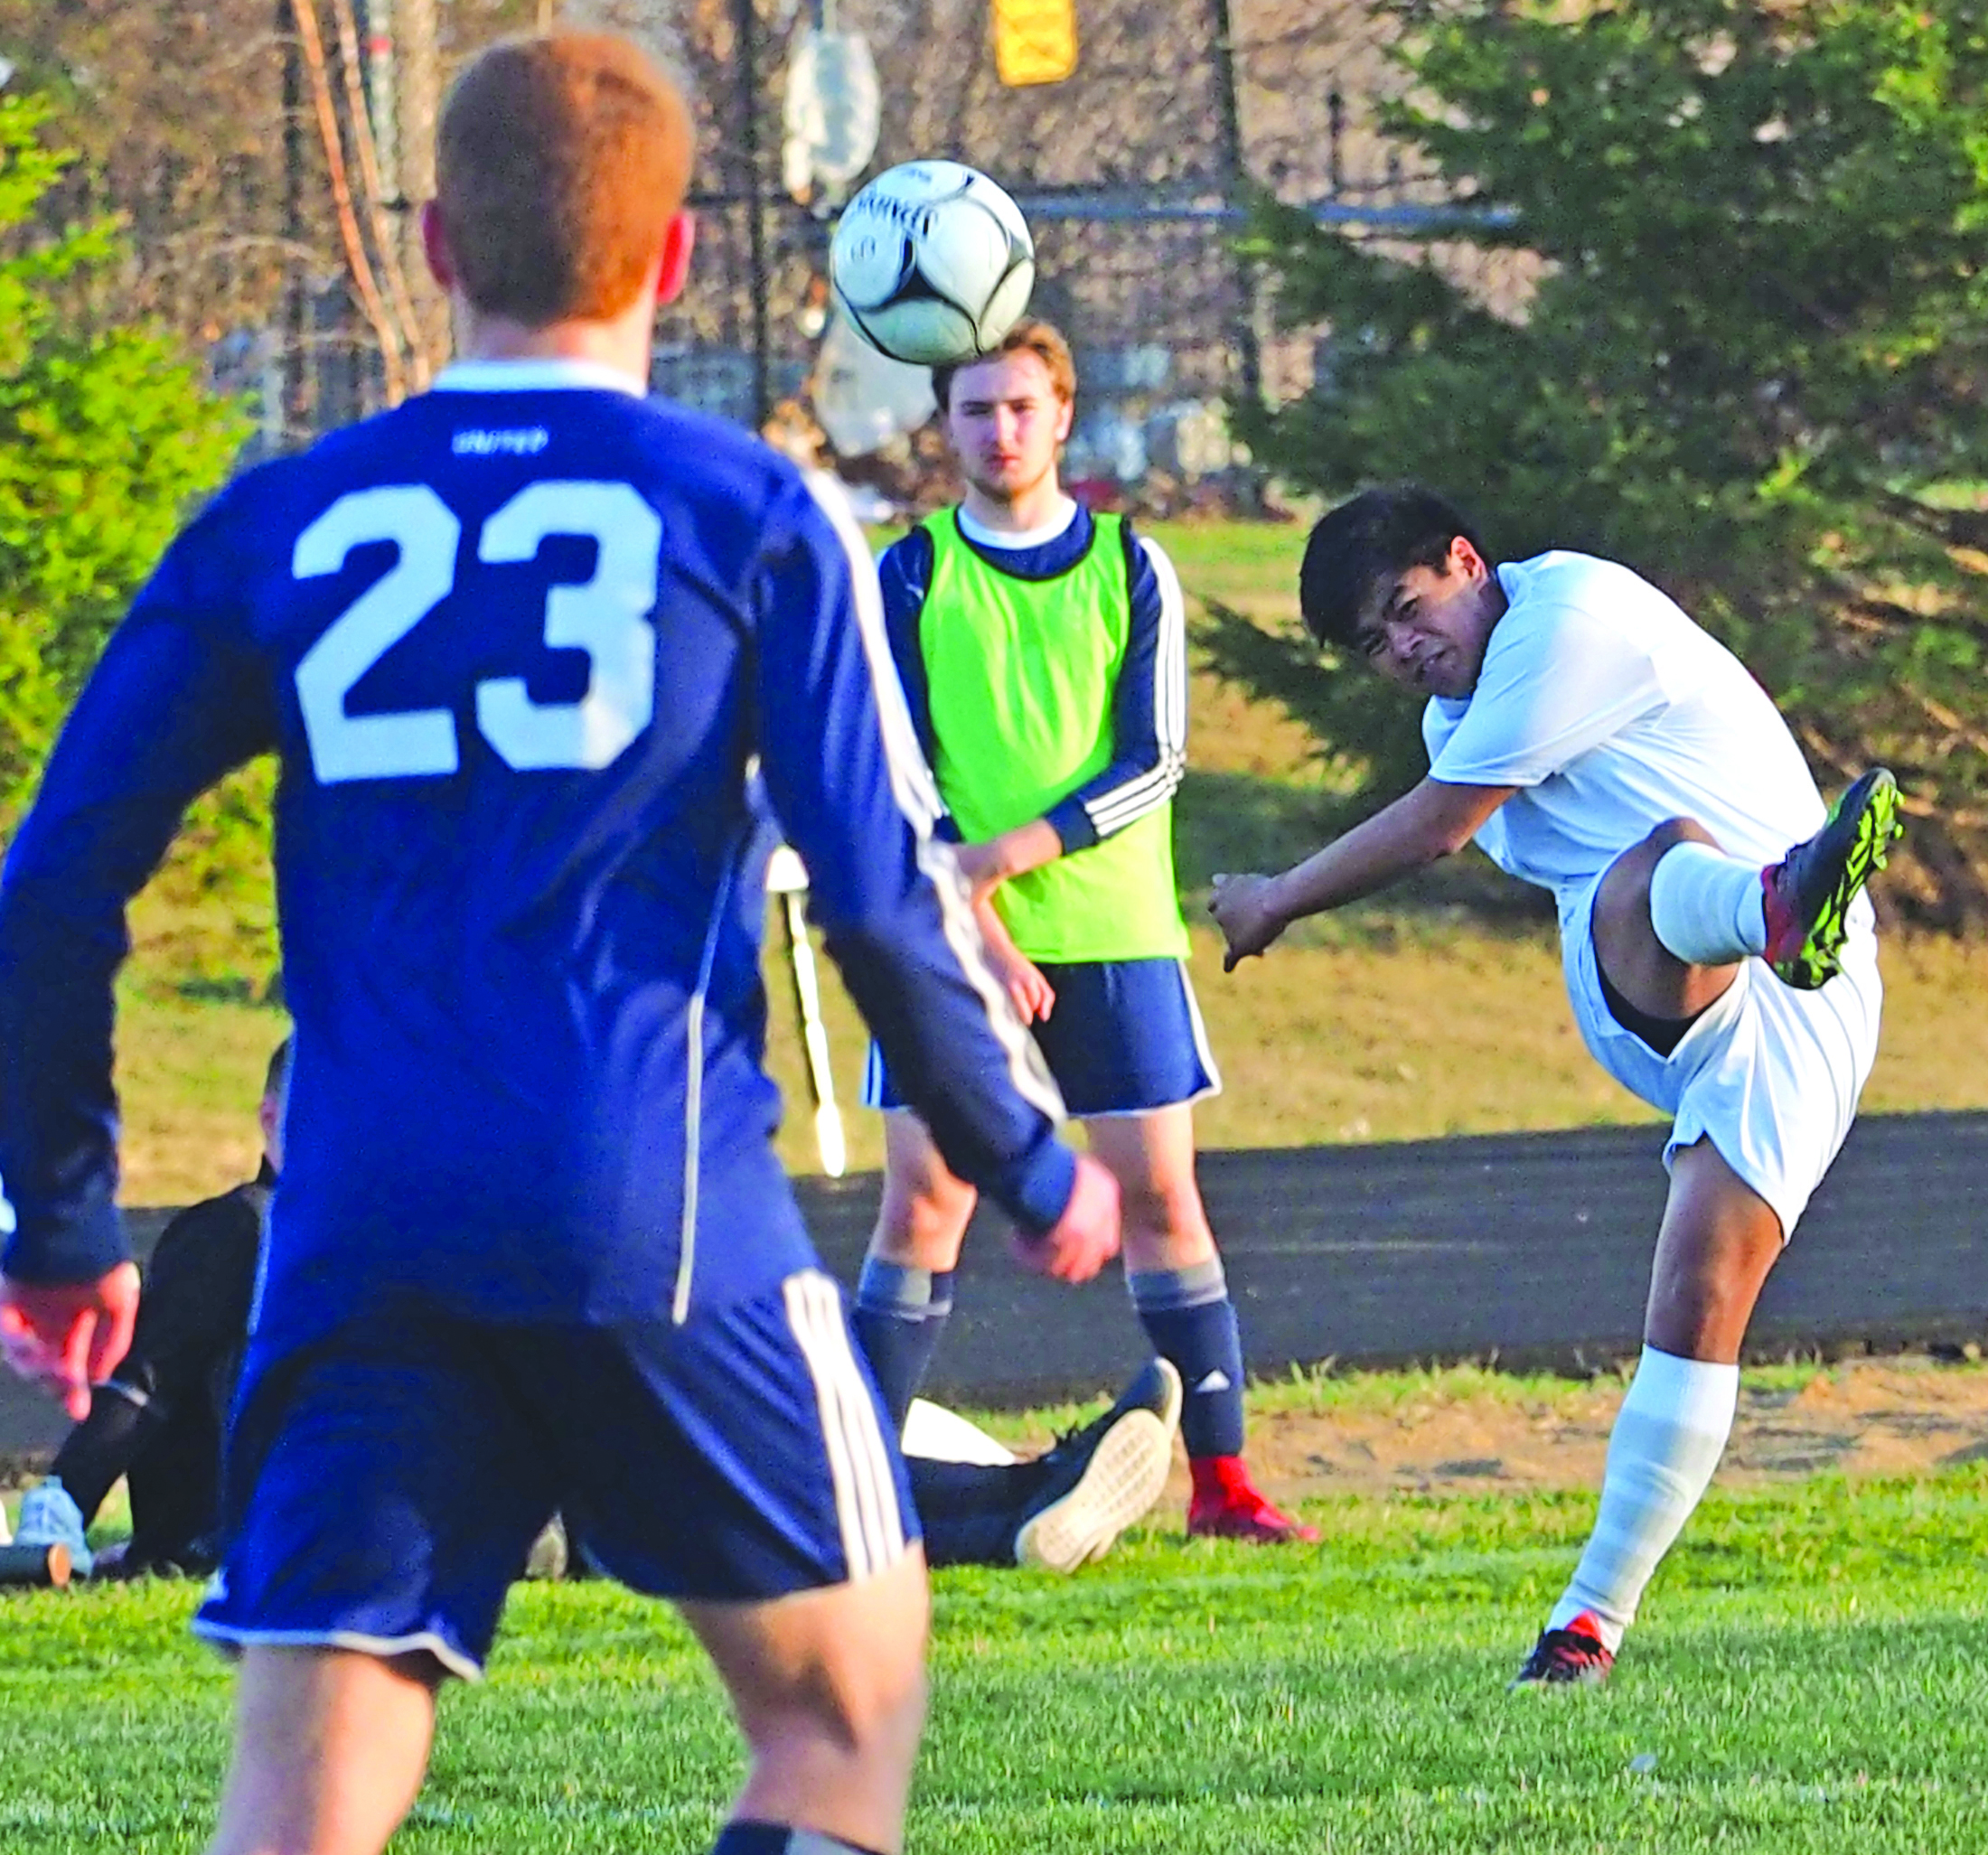 Comet soccer coach still hopeful for continued progress this spring